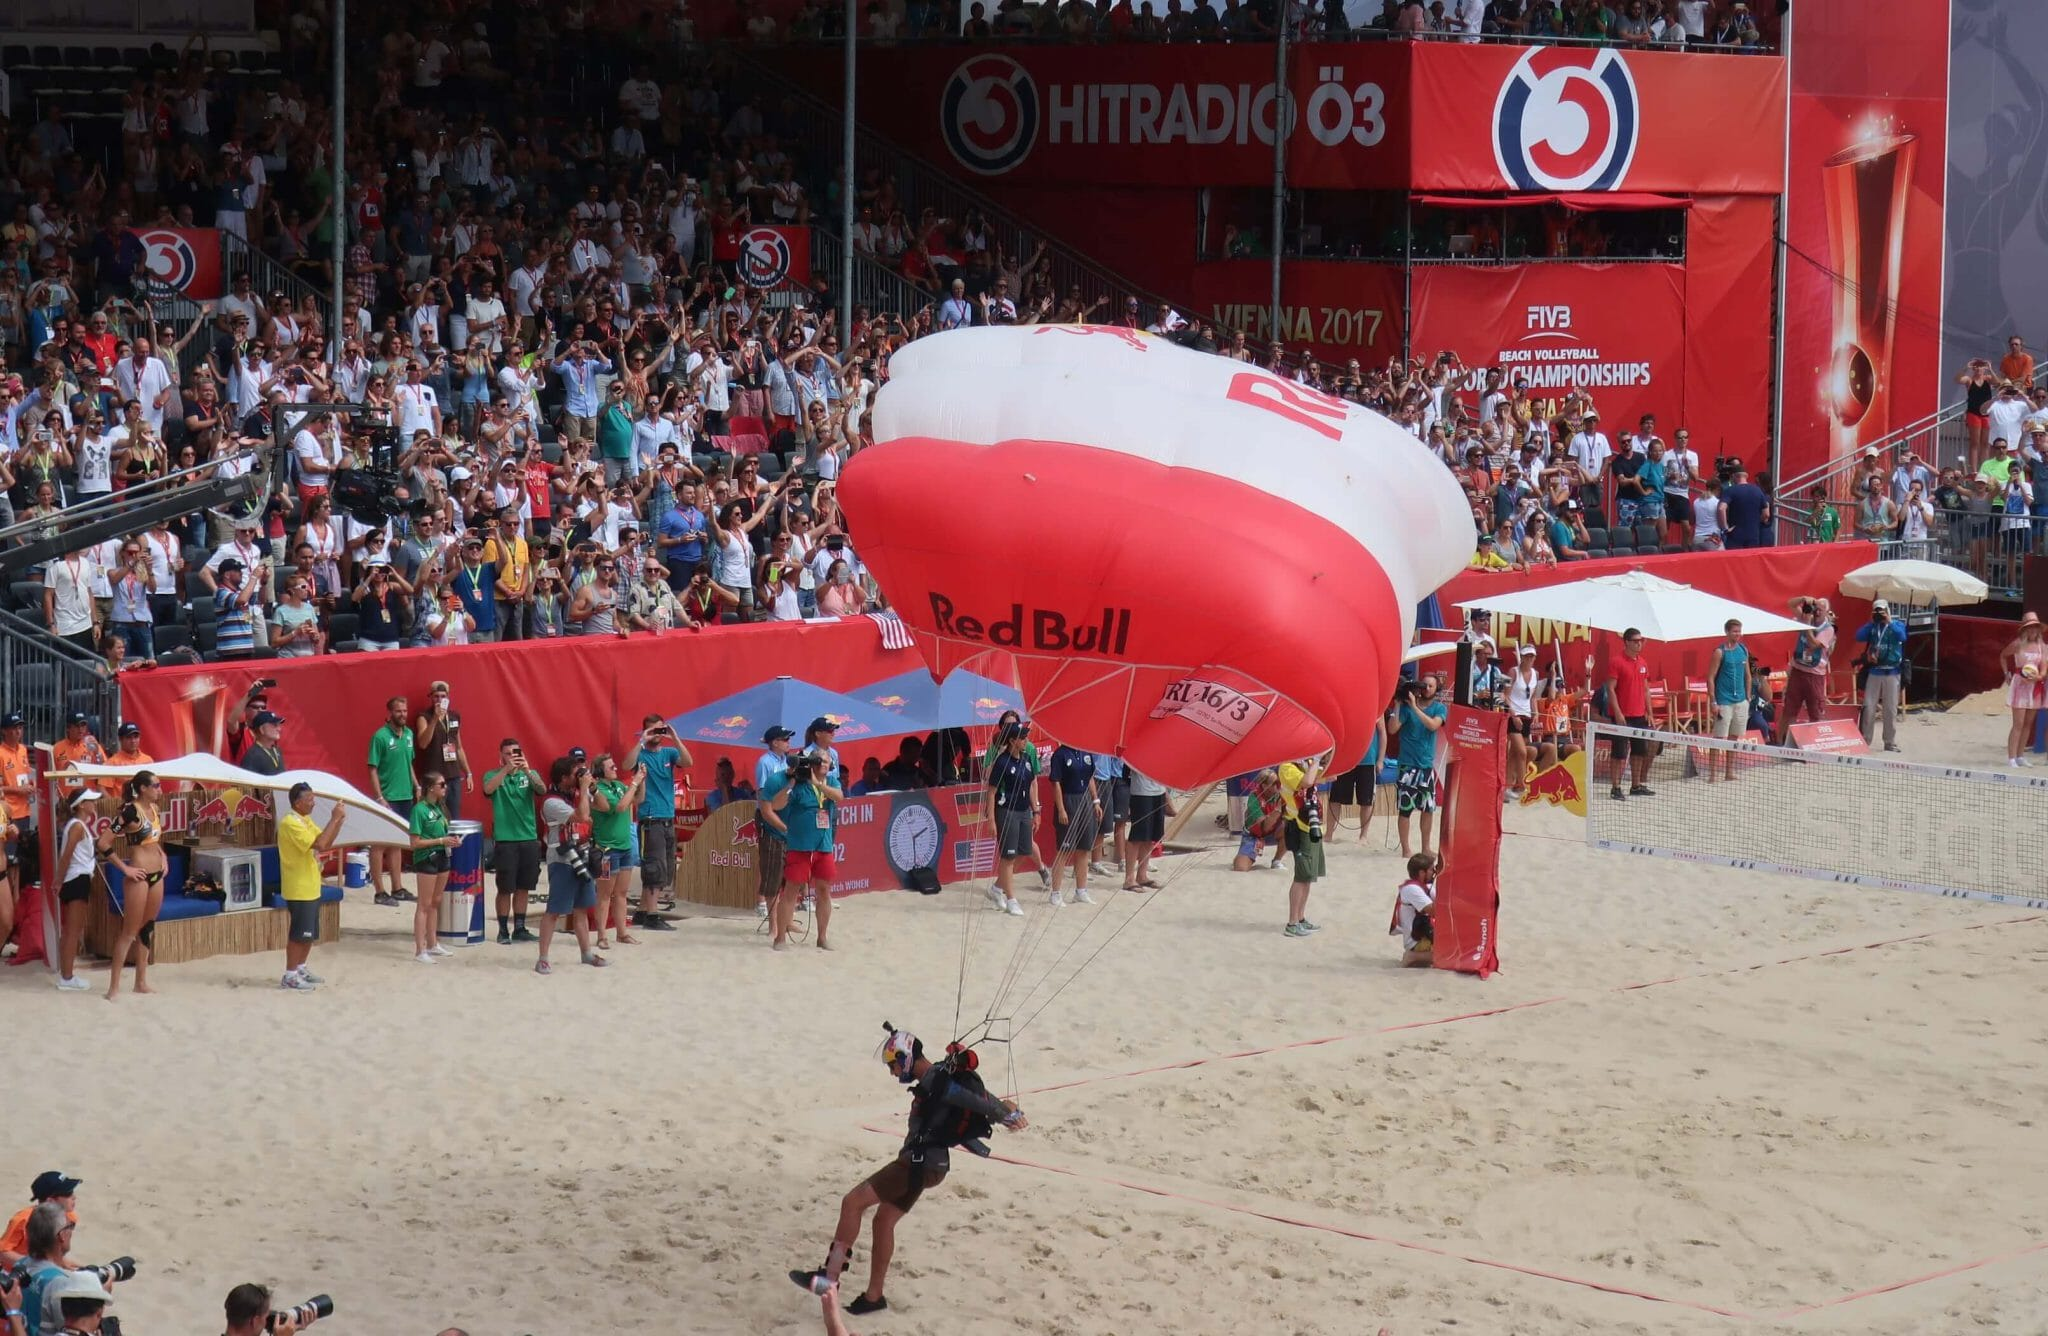 Sponsor attention at FIVB beach volleyball world championships